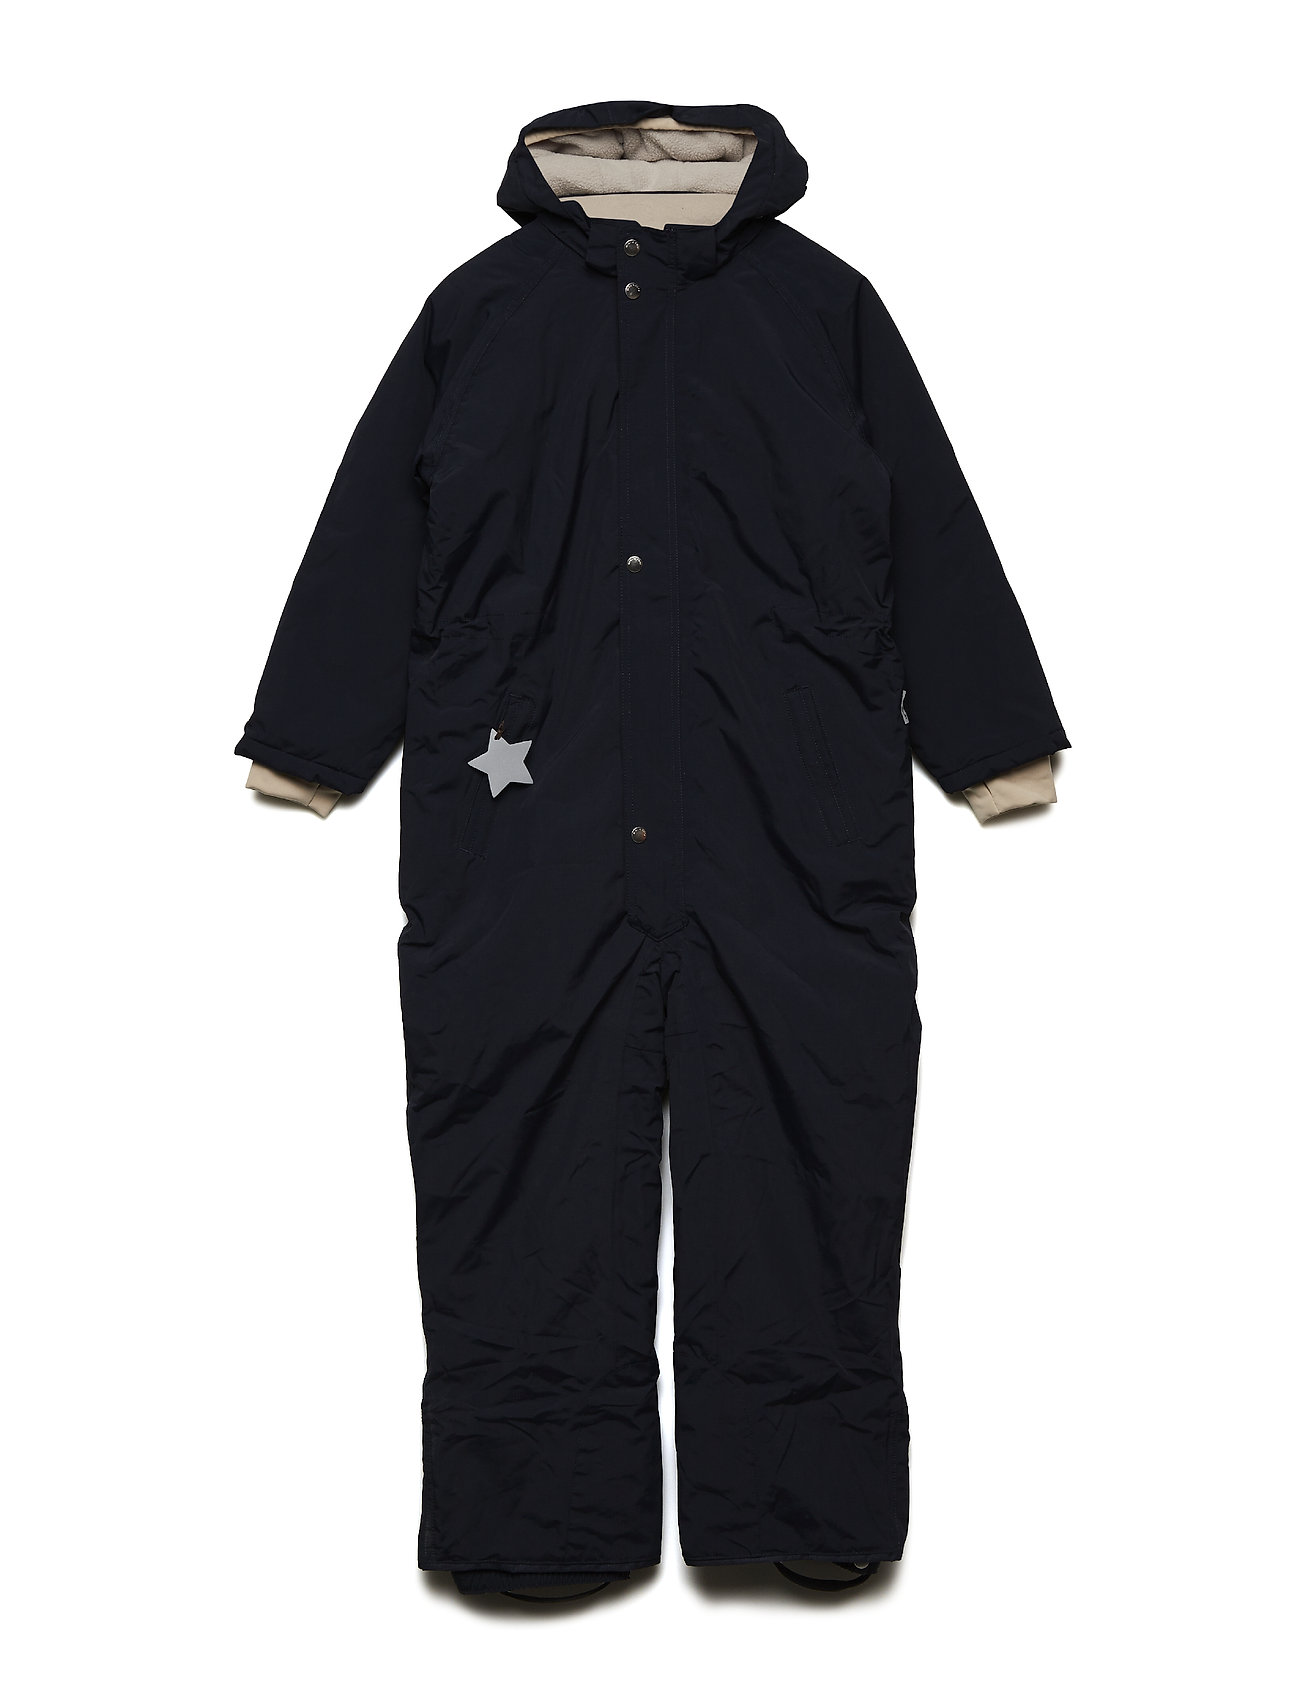 Mini A Ture Wanni Snowsuit, K - SKY CAPTAIN BLUE